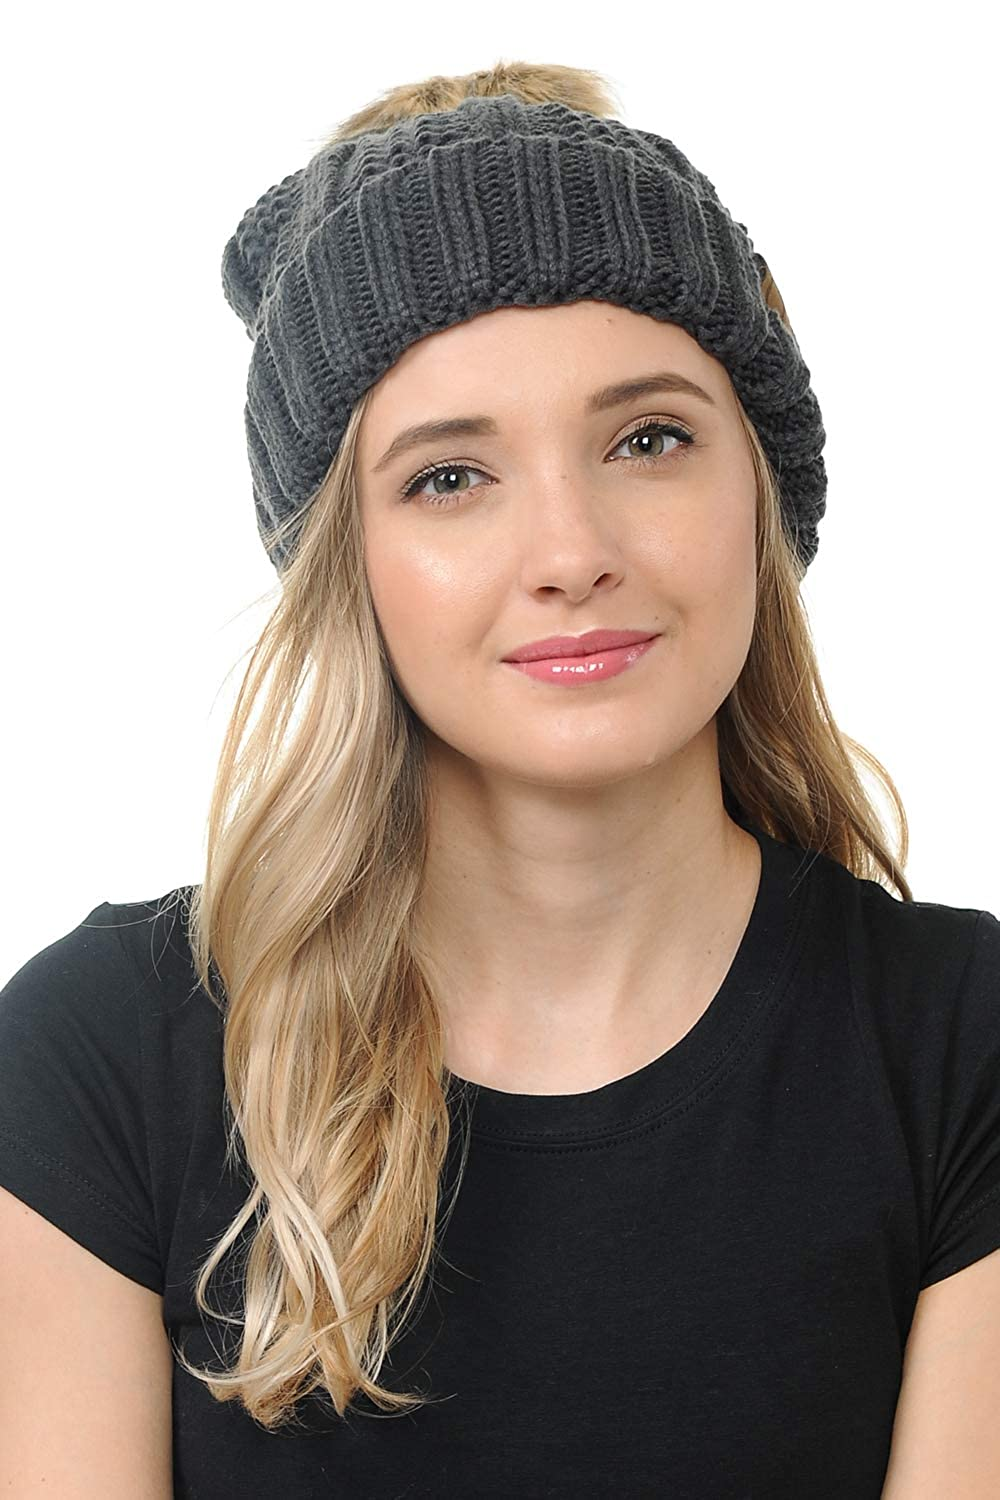 Warm Soft Thick Beanie Hats for Women /& Men Dark Melange Grey BYSUMMER Cable Knit Beanie with Faux Fur Pom